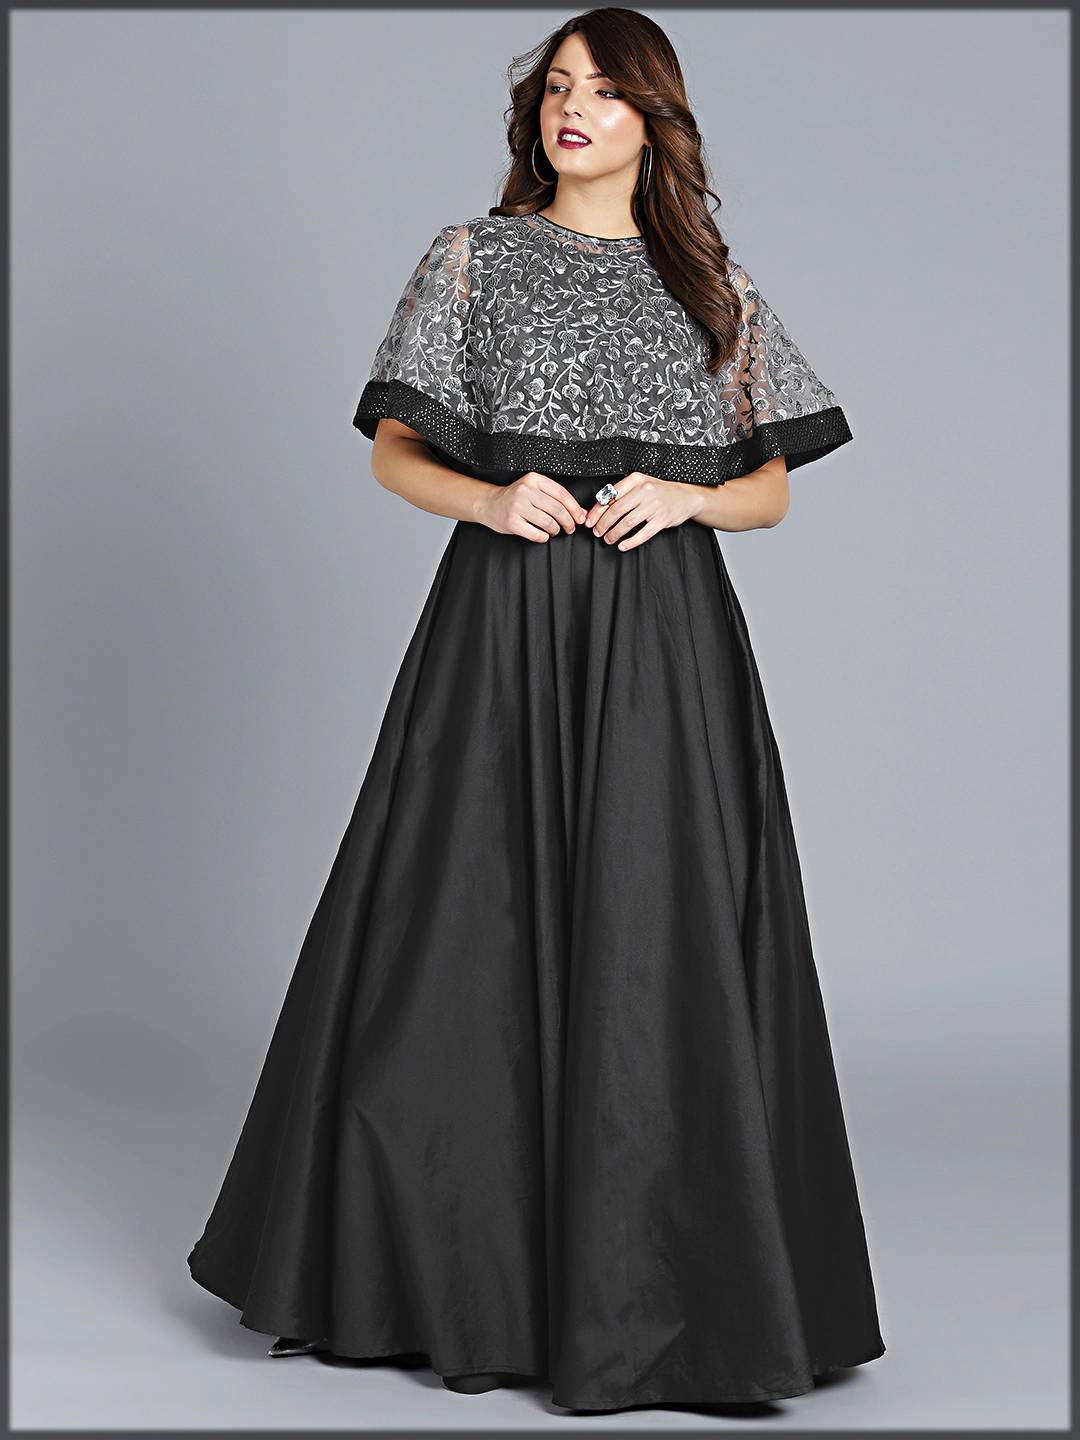 partywear long frock with exclusive net embroidery on cape